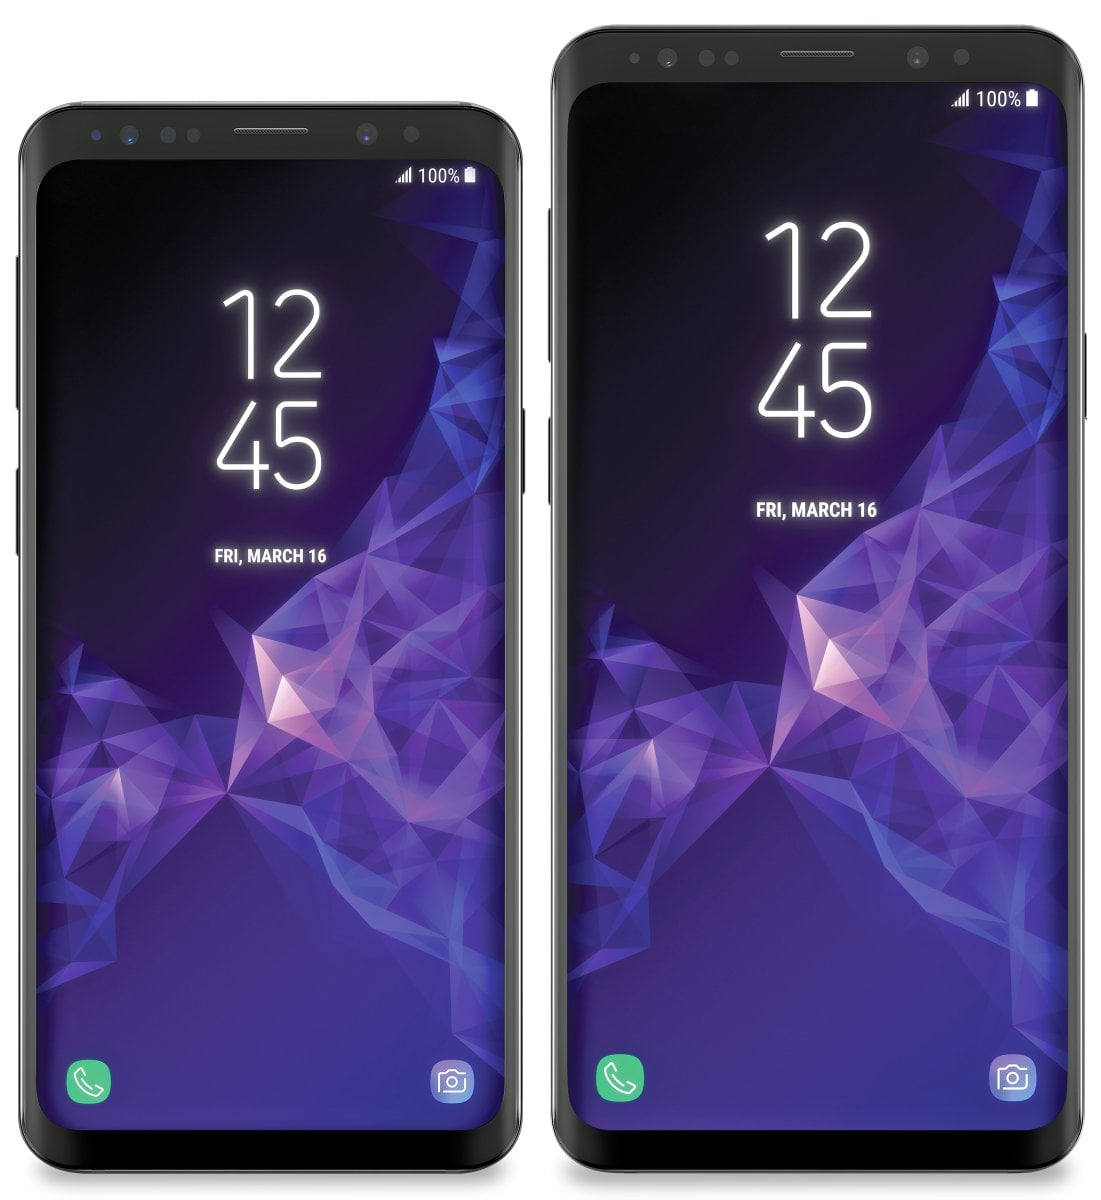 New Galaxy S9 Image Leak